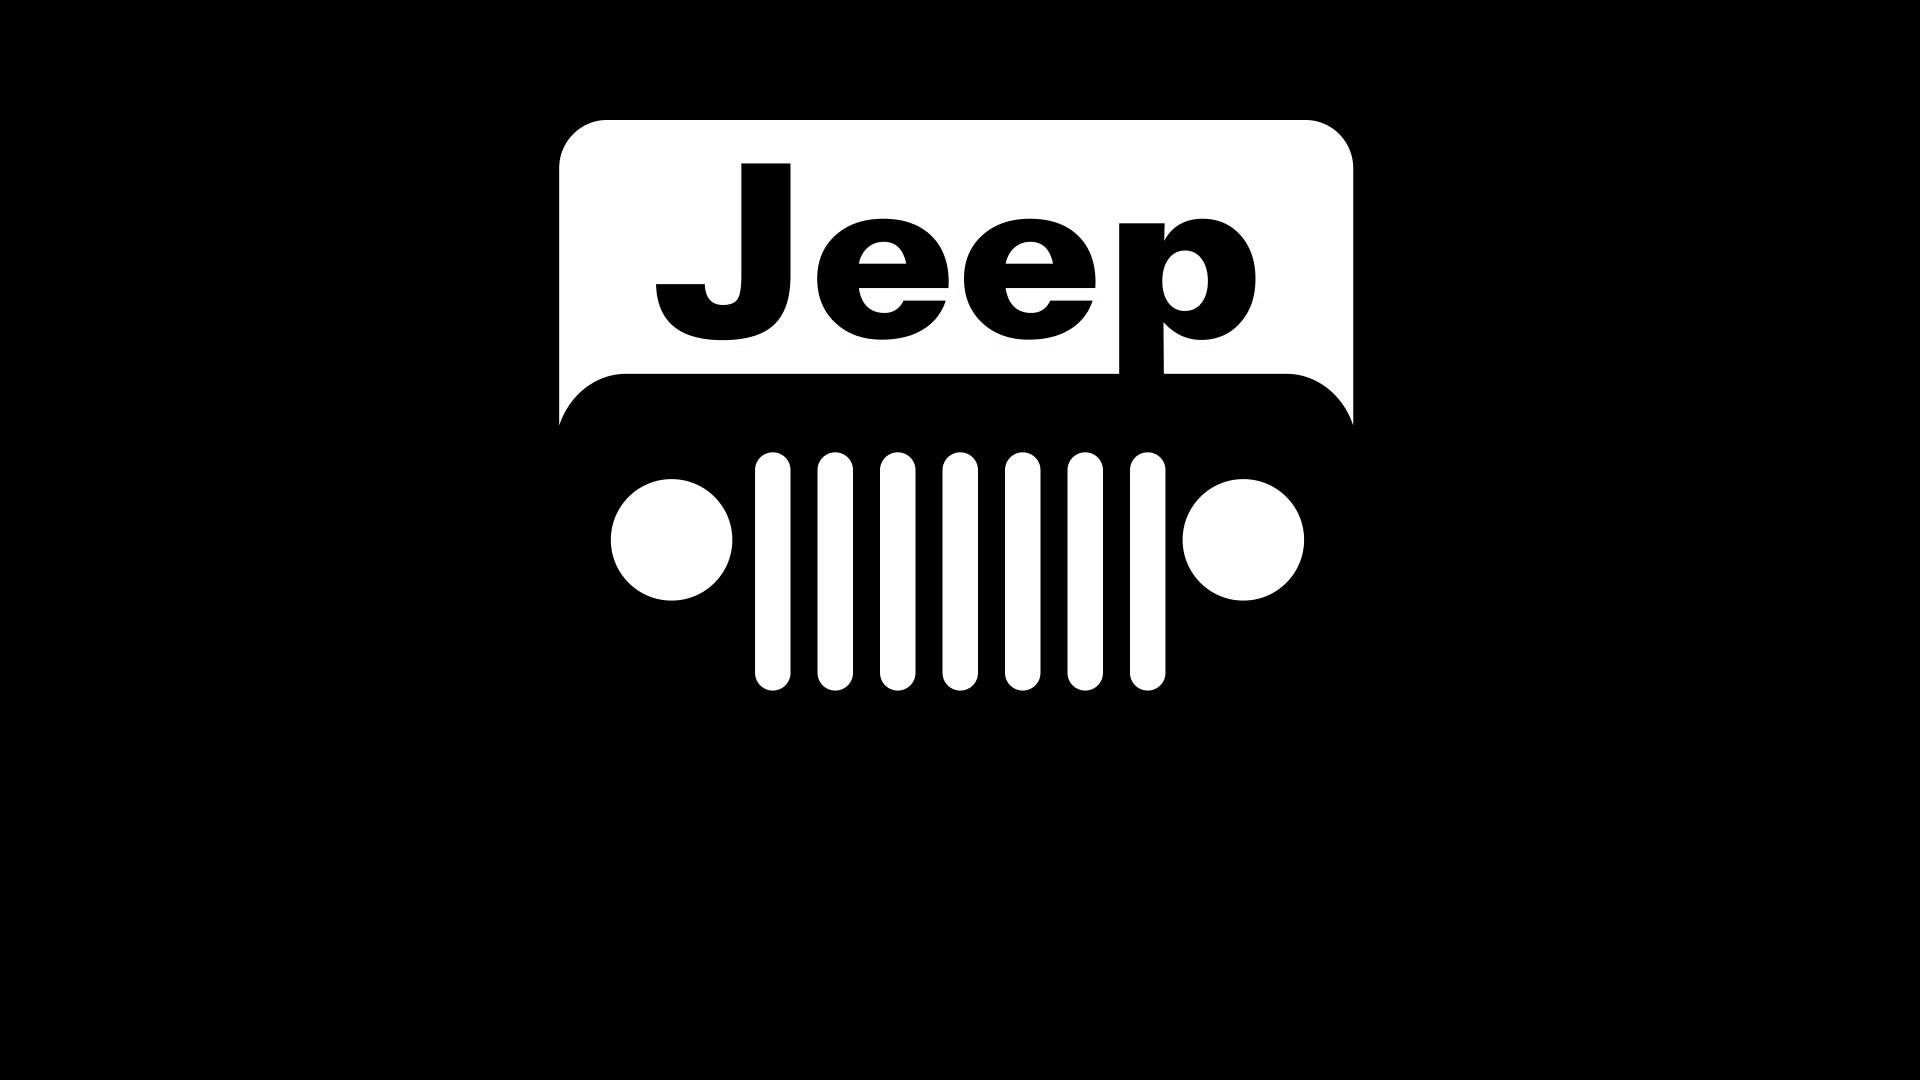 Black Jeep Emblem Wallpaper Hd